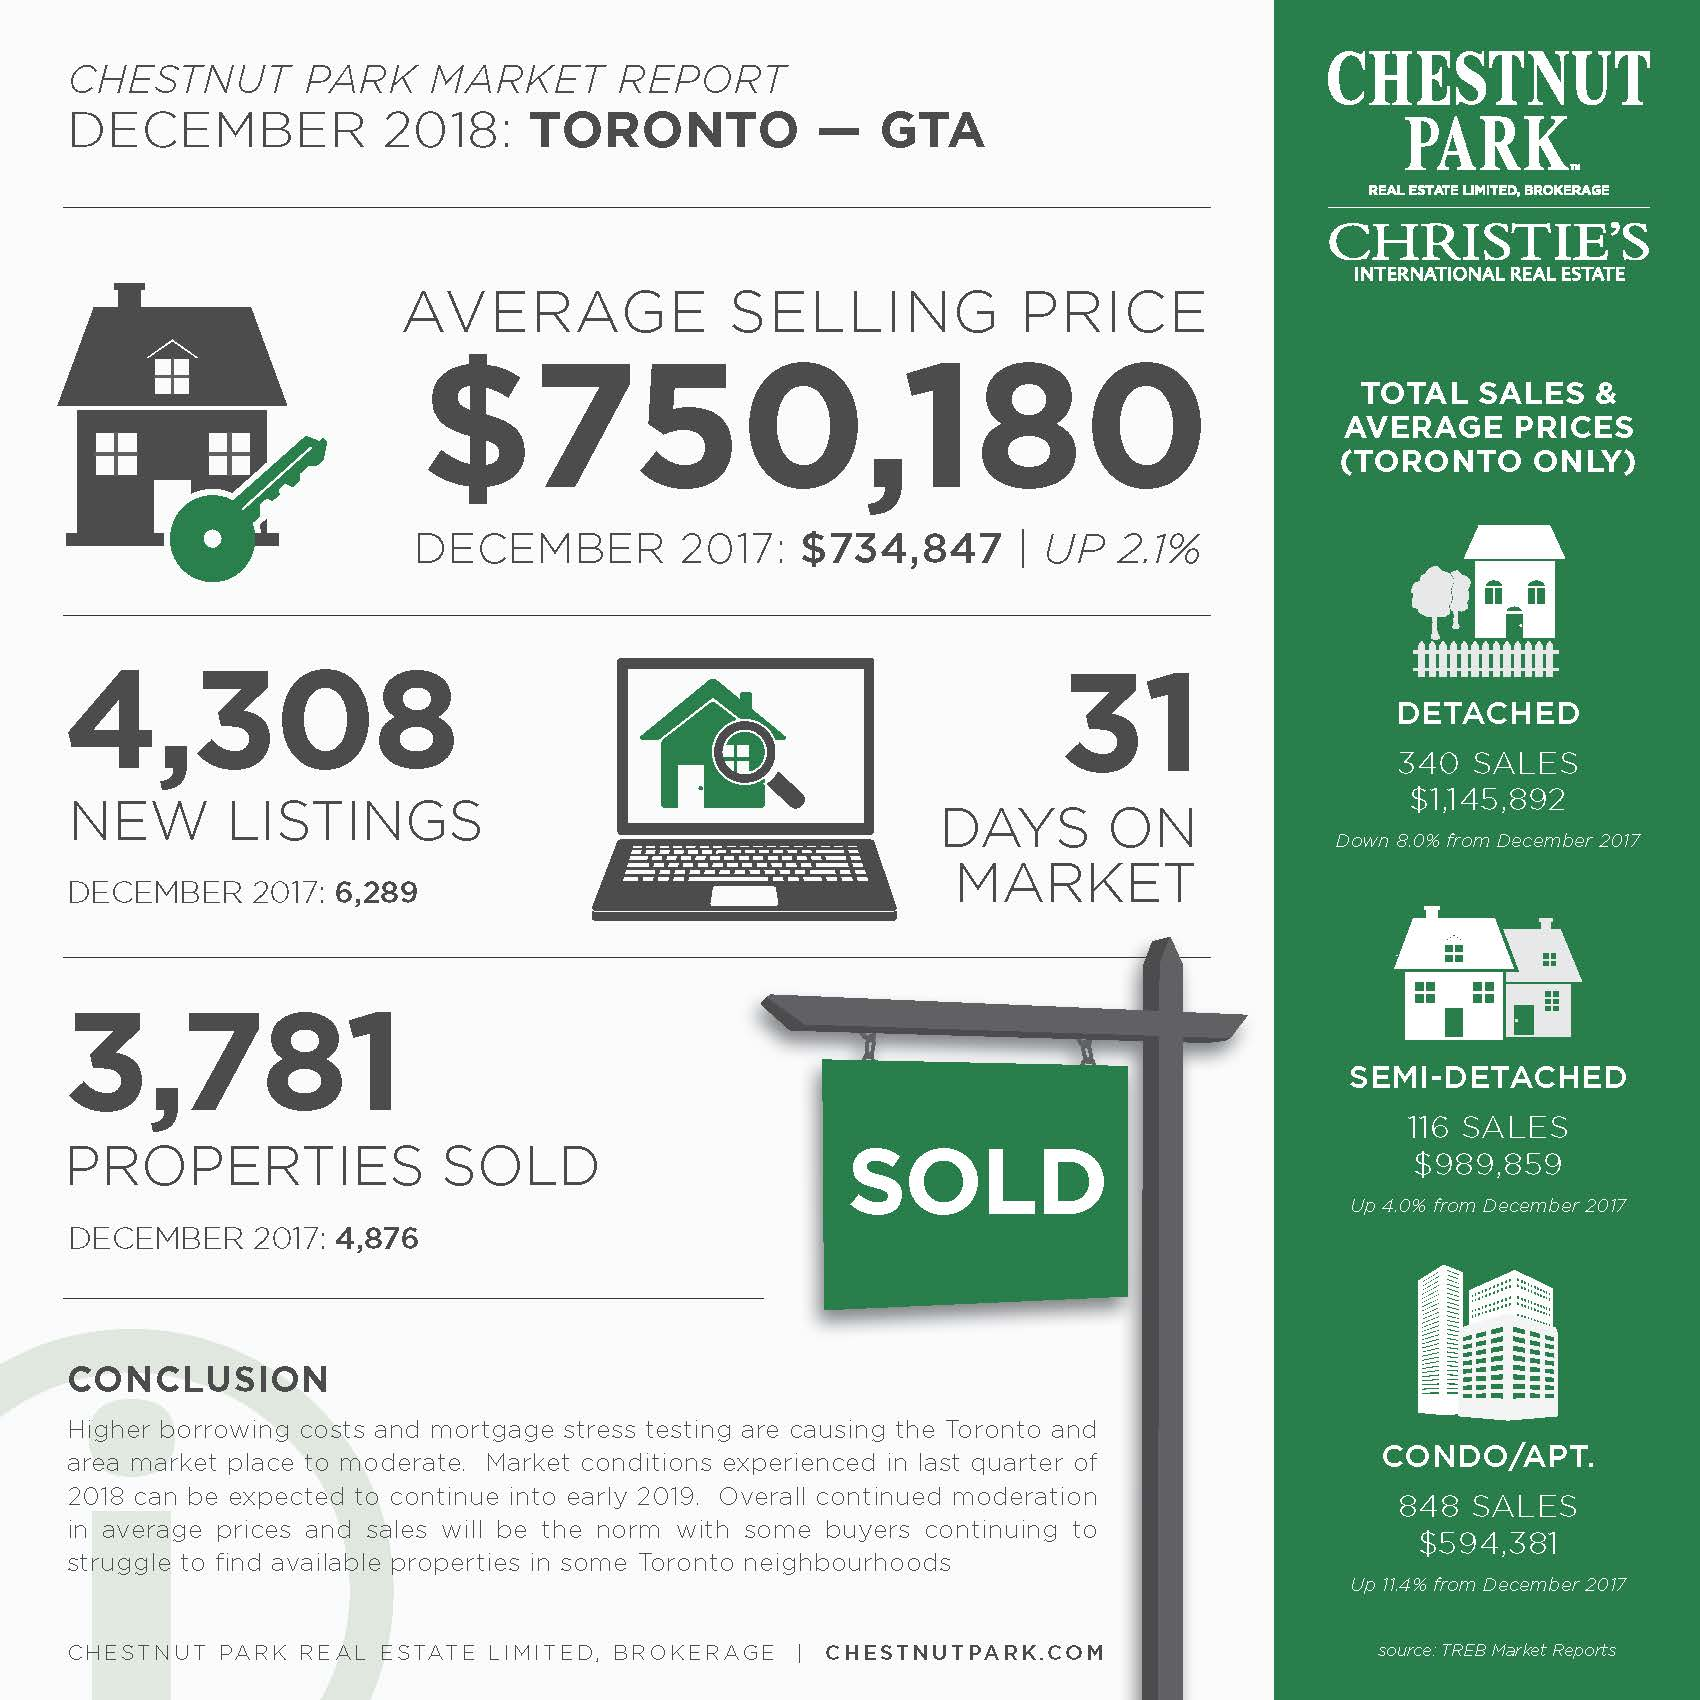 Toronto_MarketReport_December2018 - JPEG.jpg